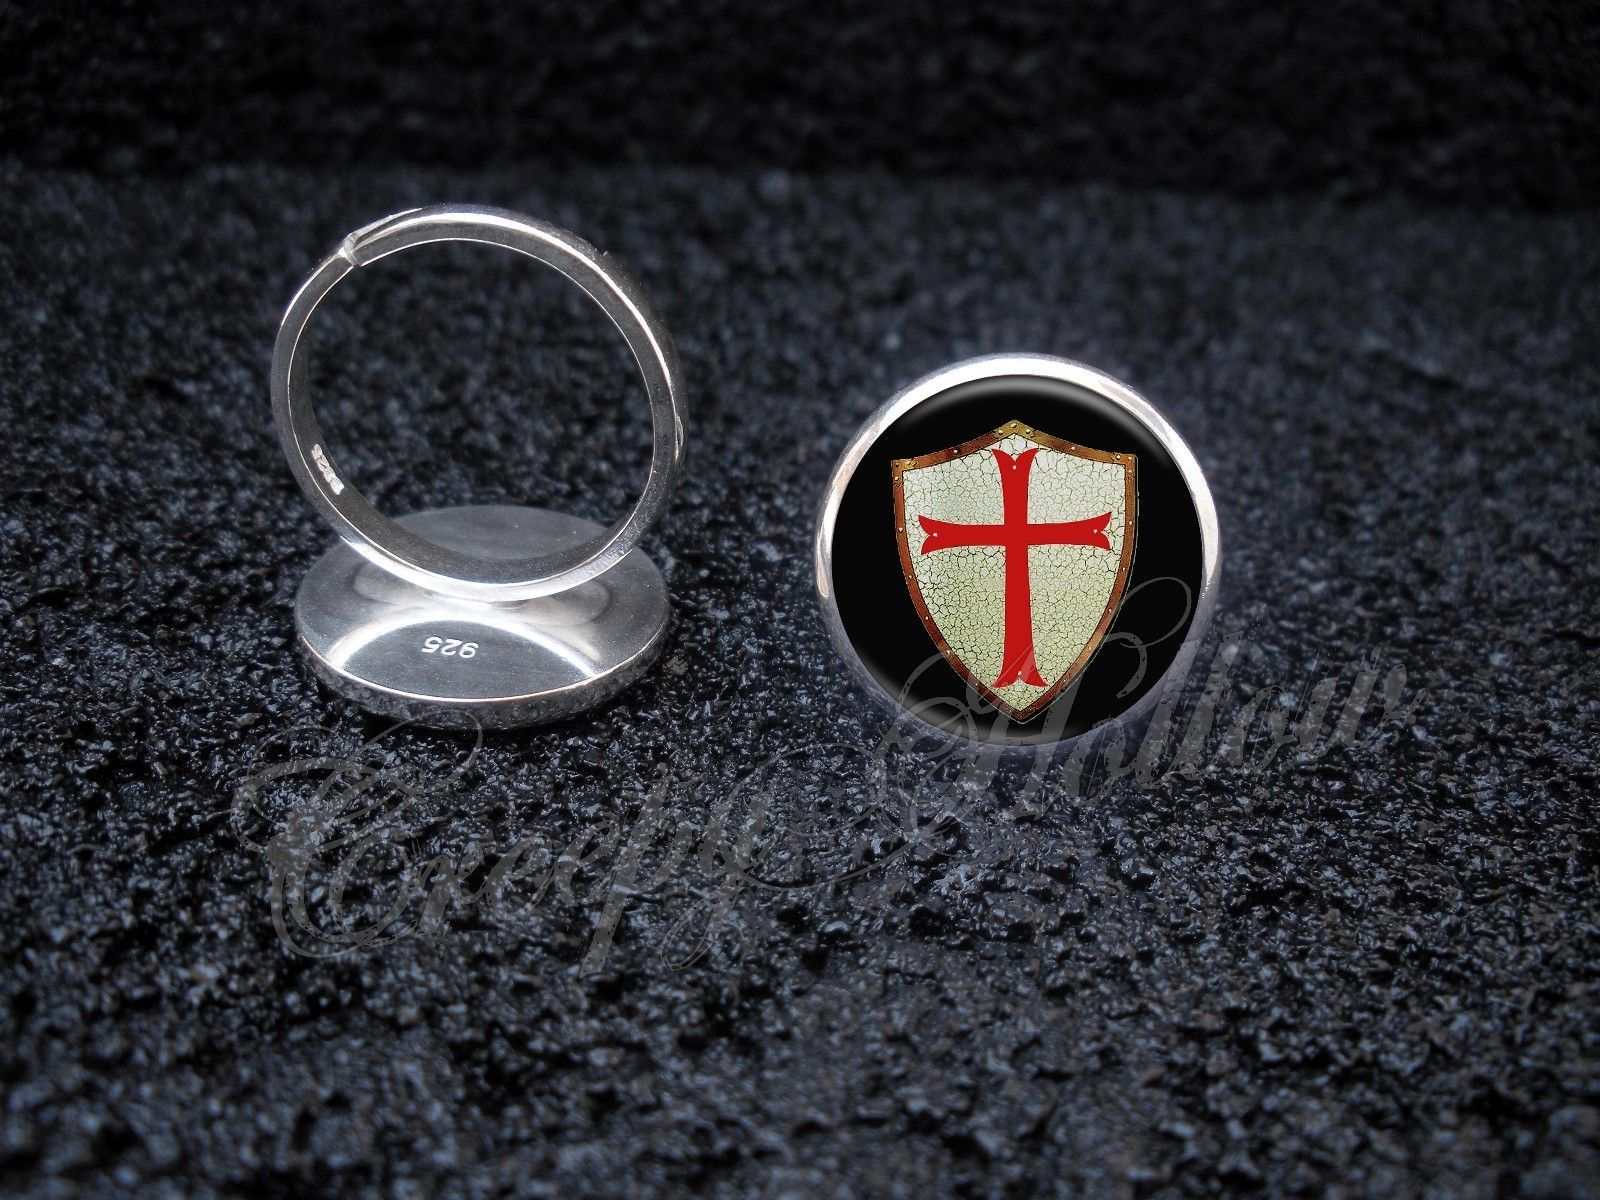 Primary image for 925 Sterling Silver Adjustable Ring Knights Templar Shield with Red Cross